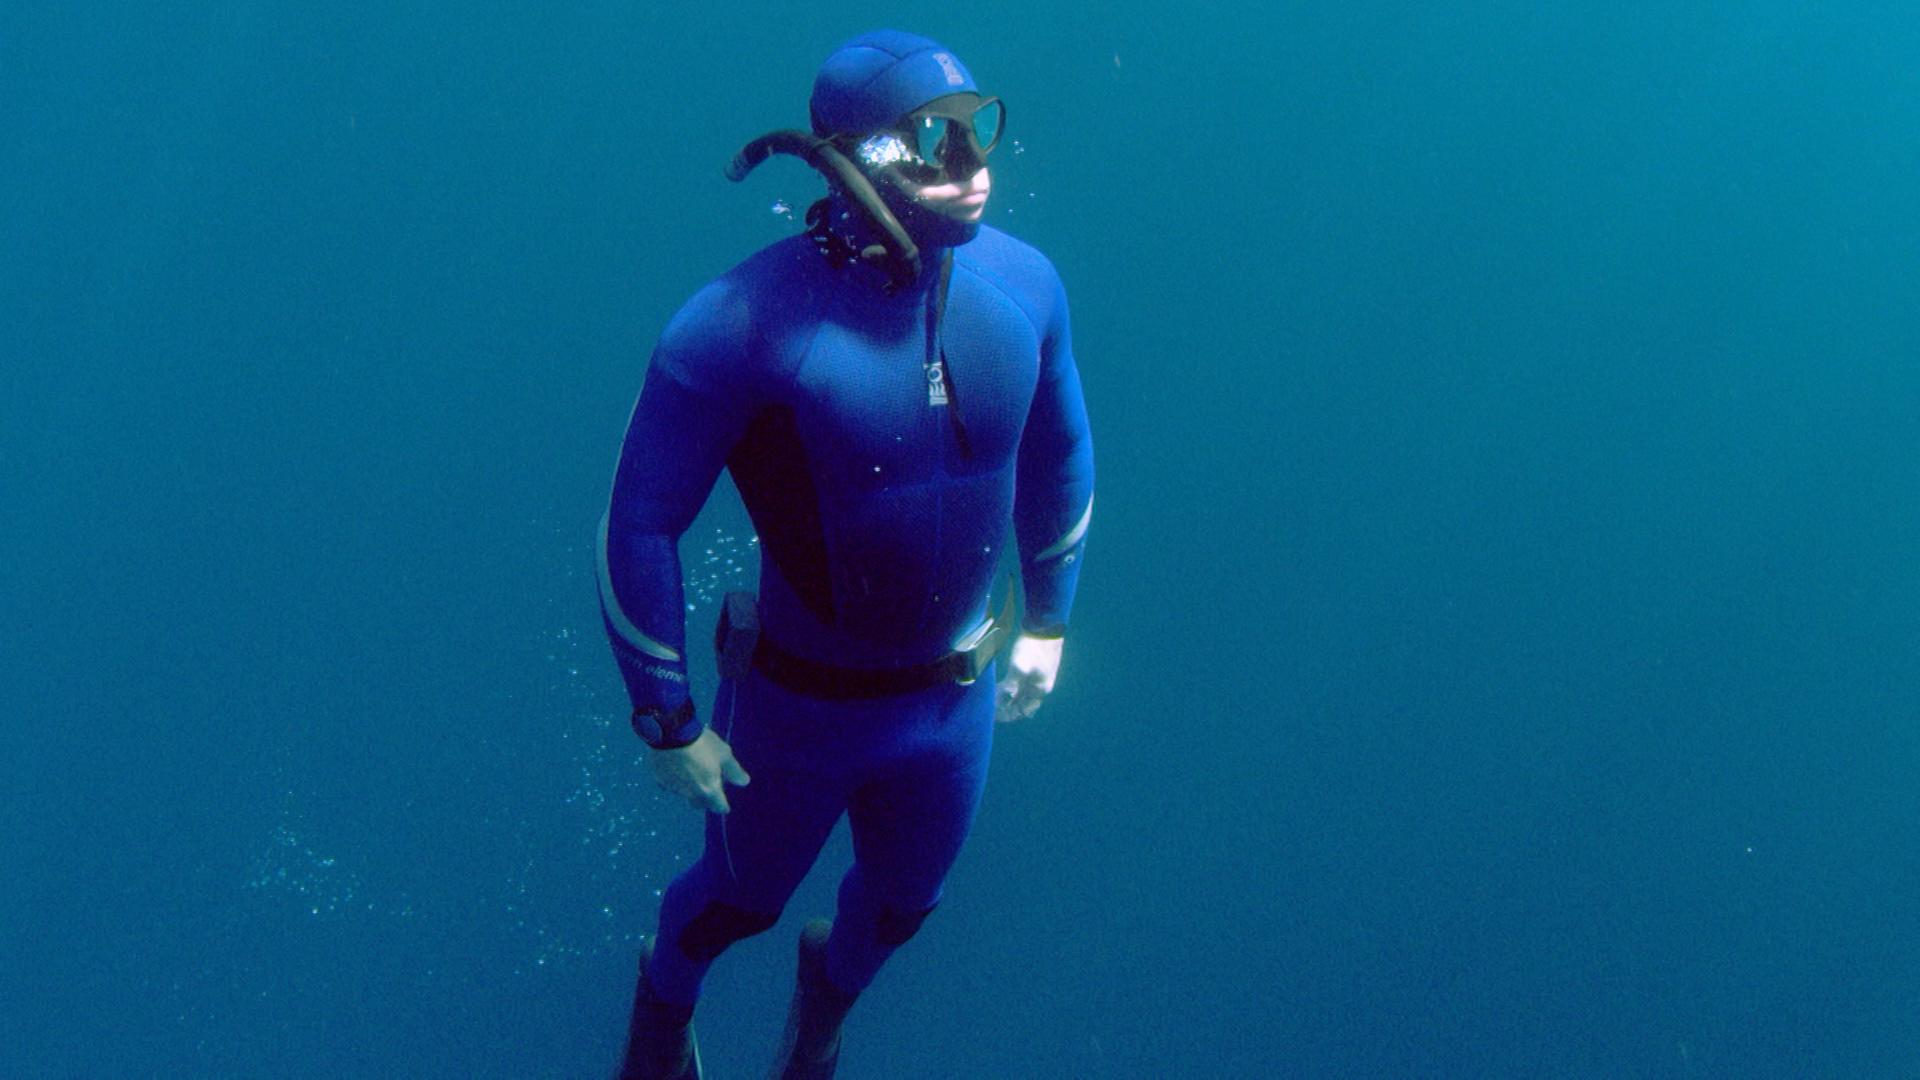 CBBC Beyond Bionic - Andy Torbet snorkelling in wetsuit